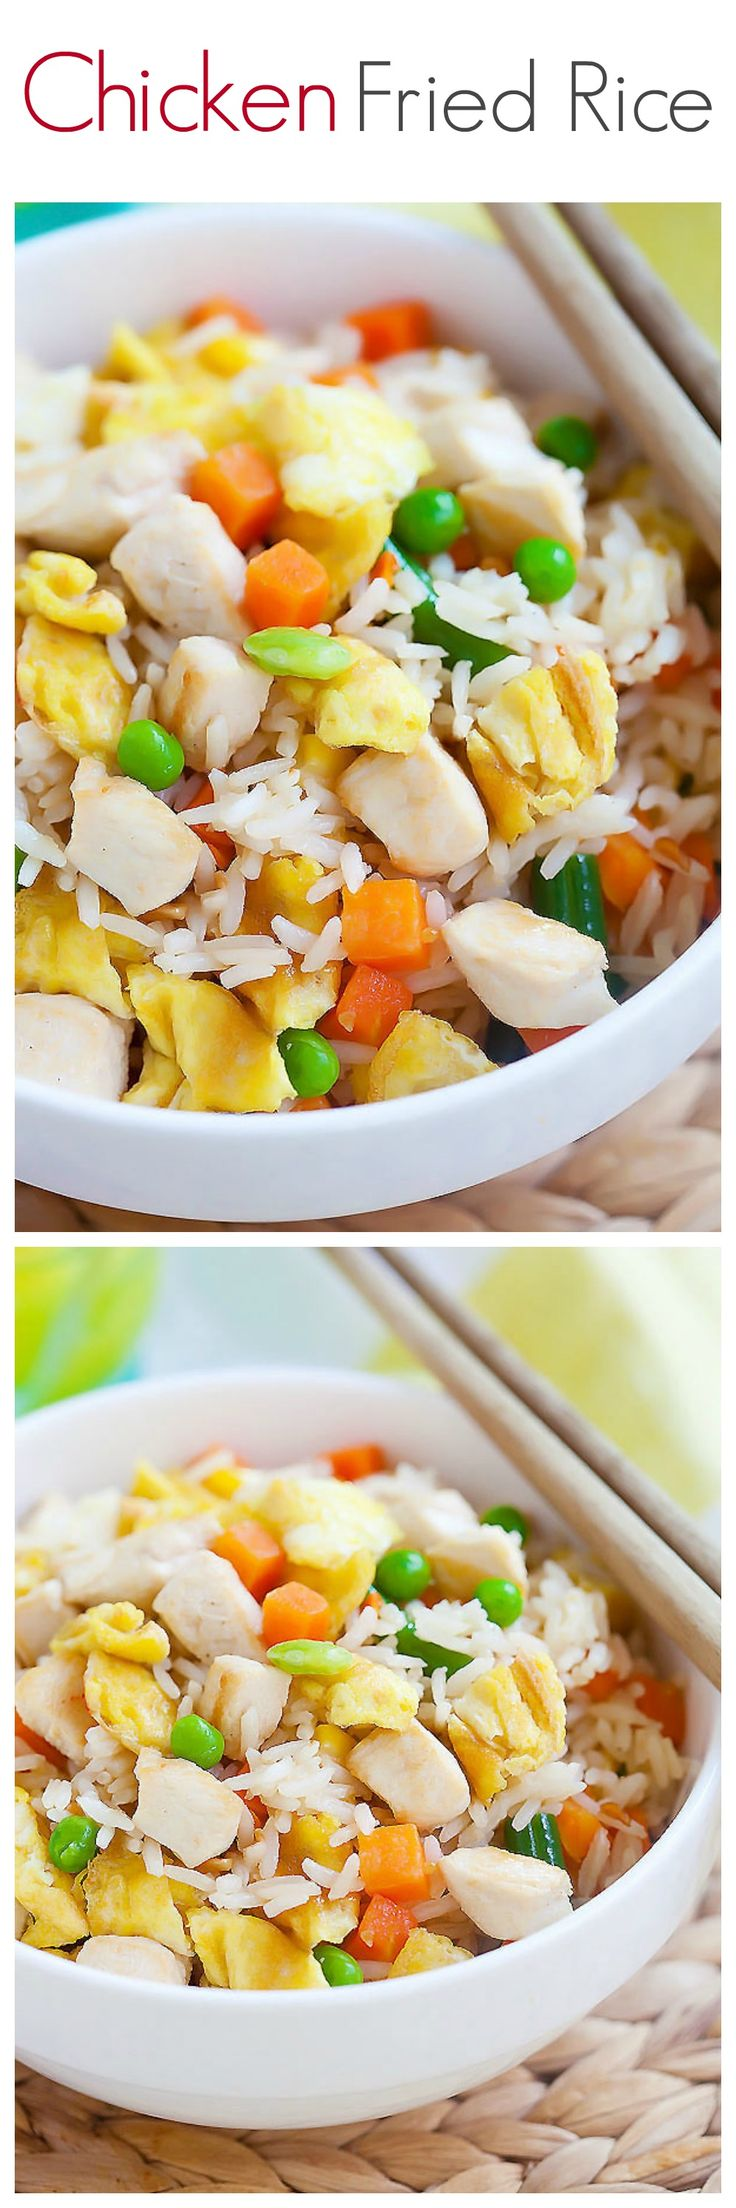 Chicken fried rice – a popular fried rice with chicken. Easy chicken fried rice recipe that is healthier & better than regular takeout and takes 20 mins   rasamalaysia.comm